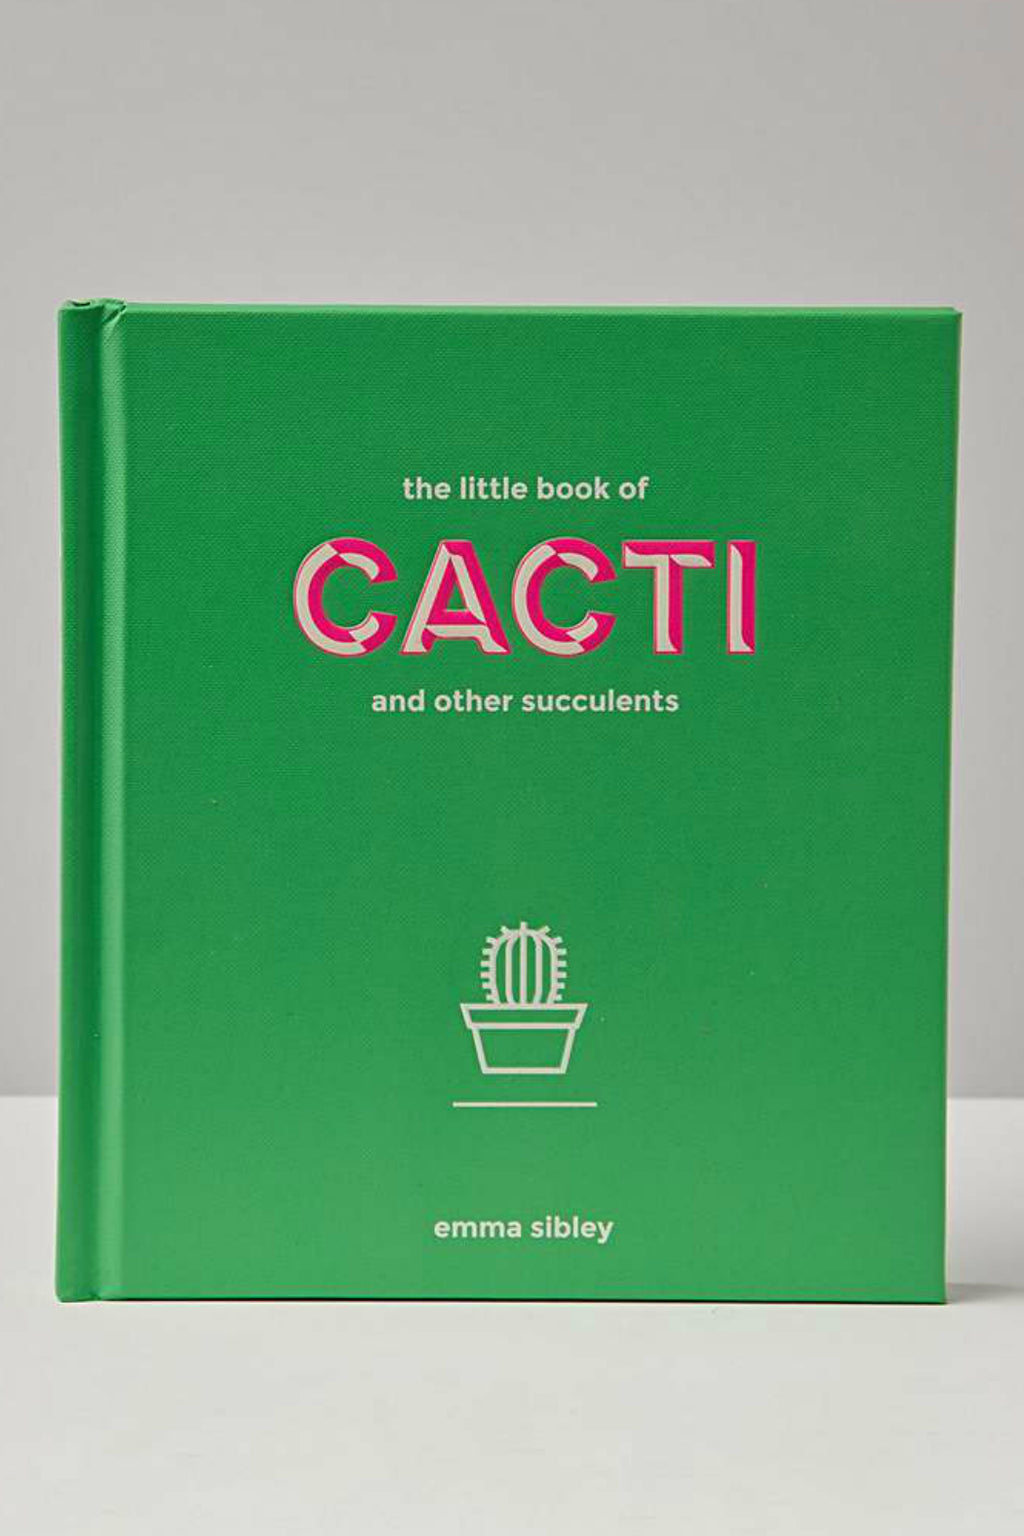 The Little Book of Cacti and Other Succulents  By Emma Sibley